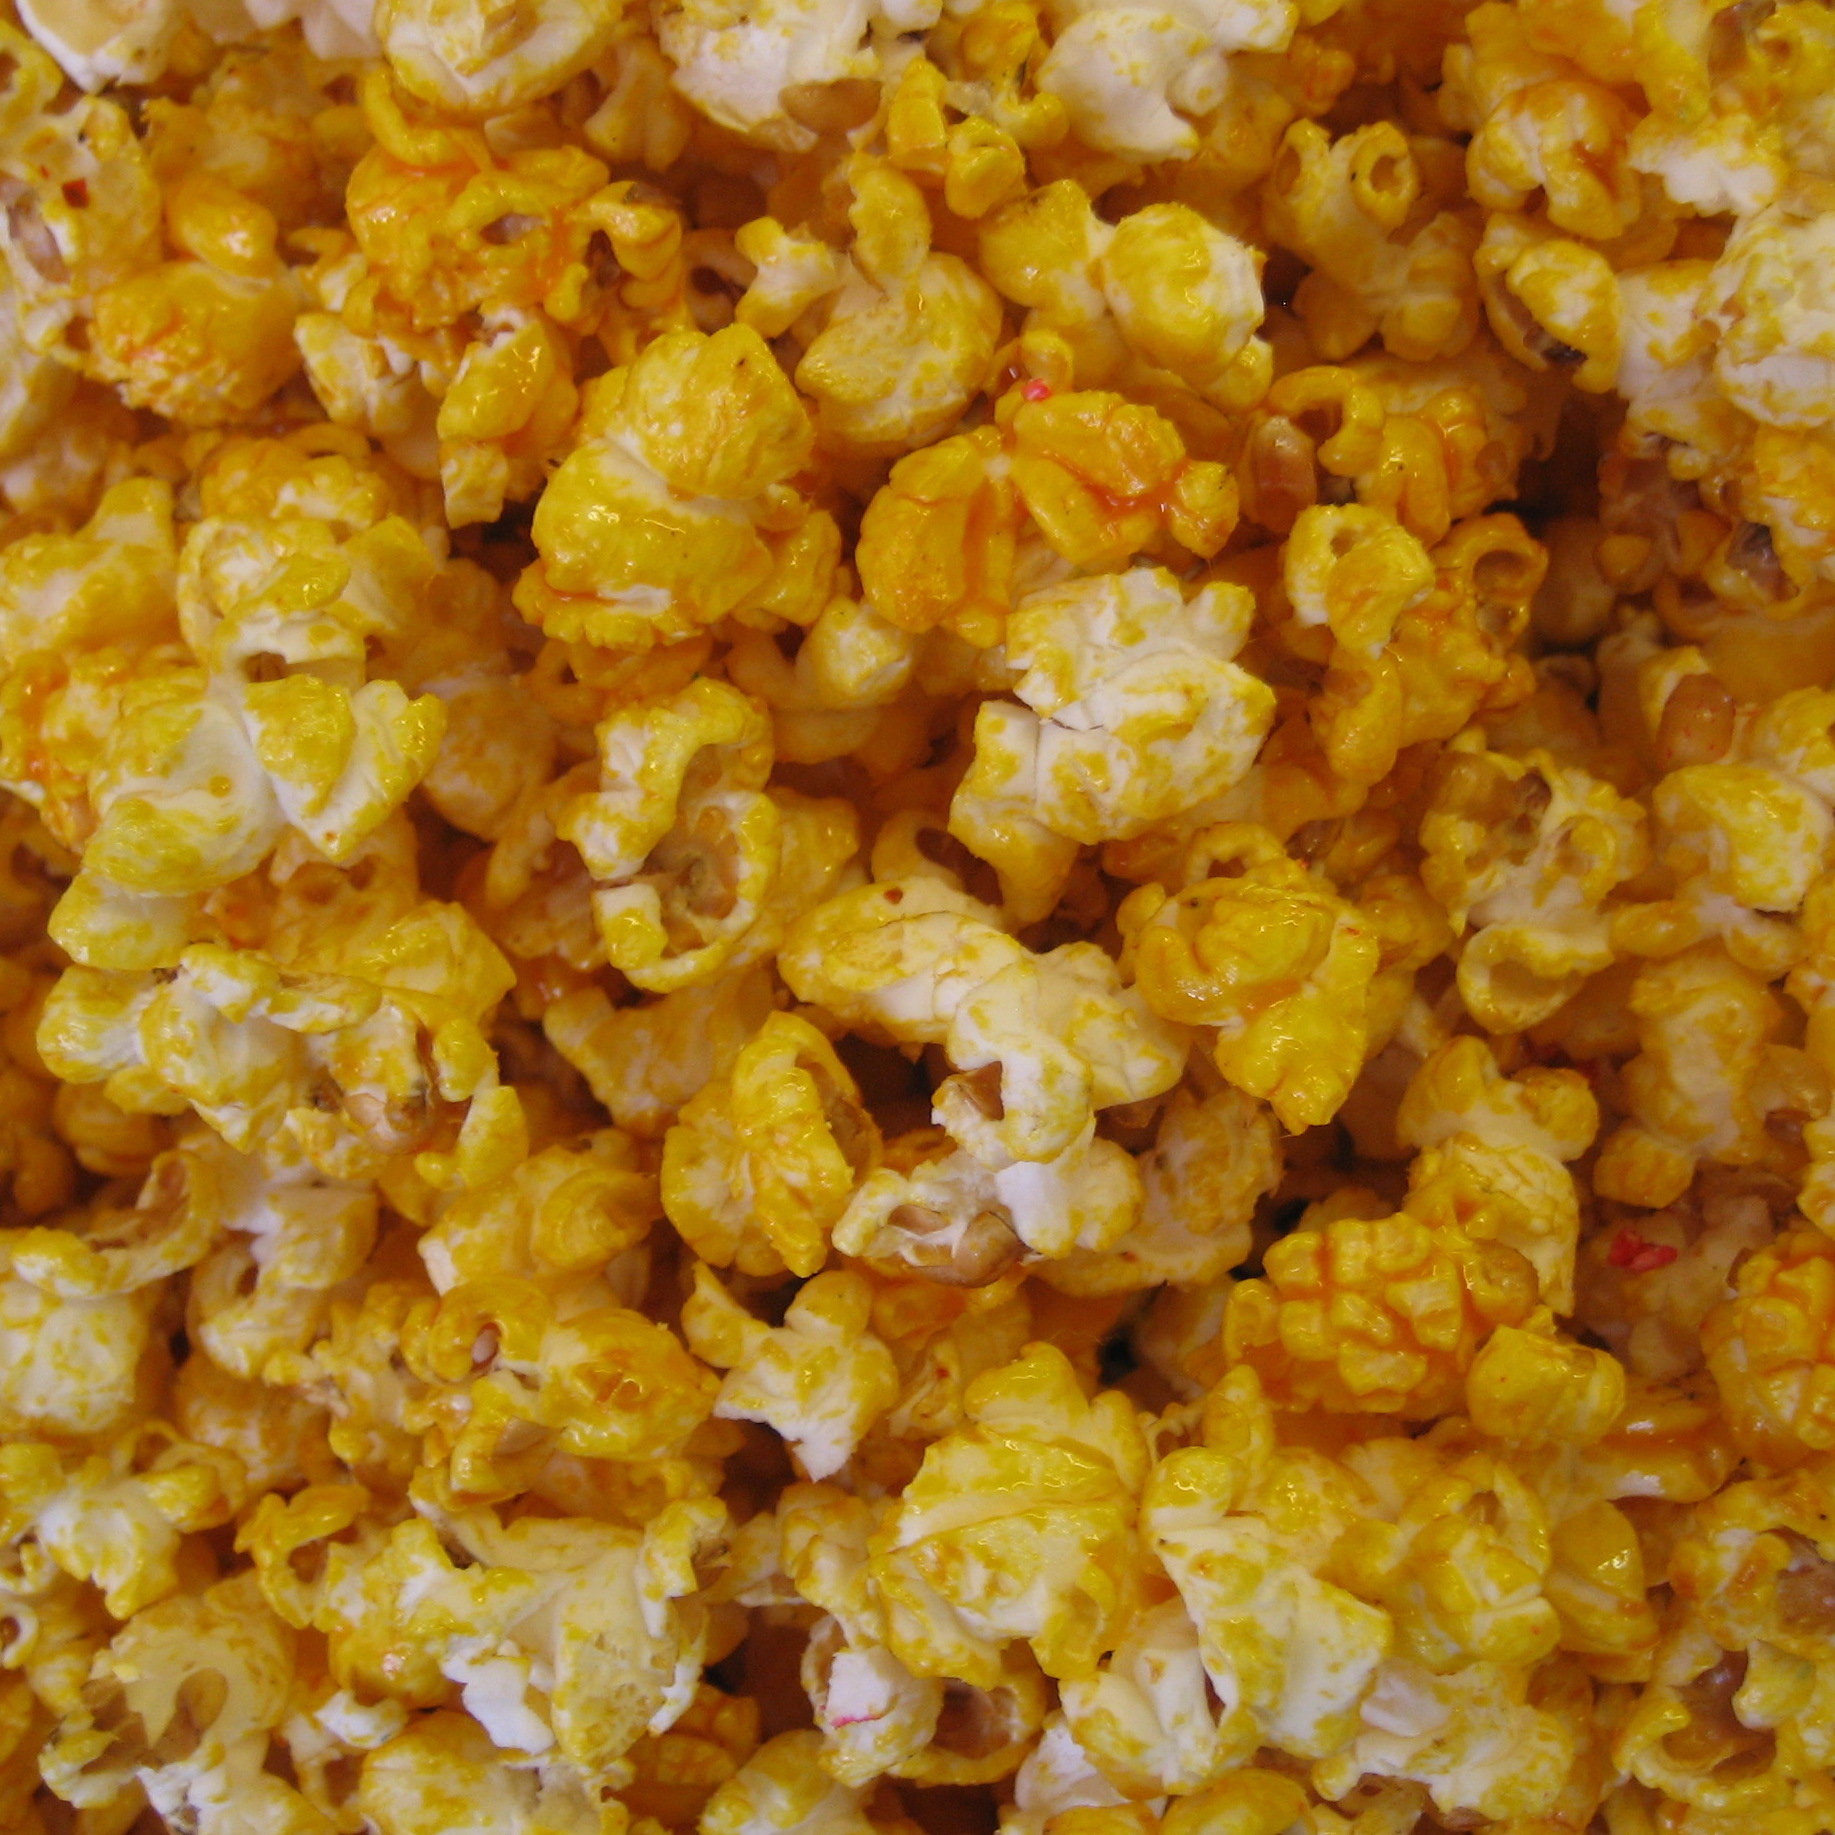 yellow kettle corn